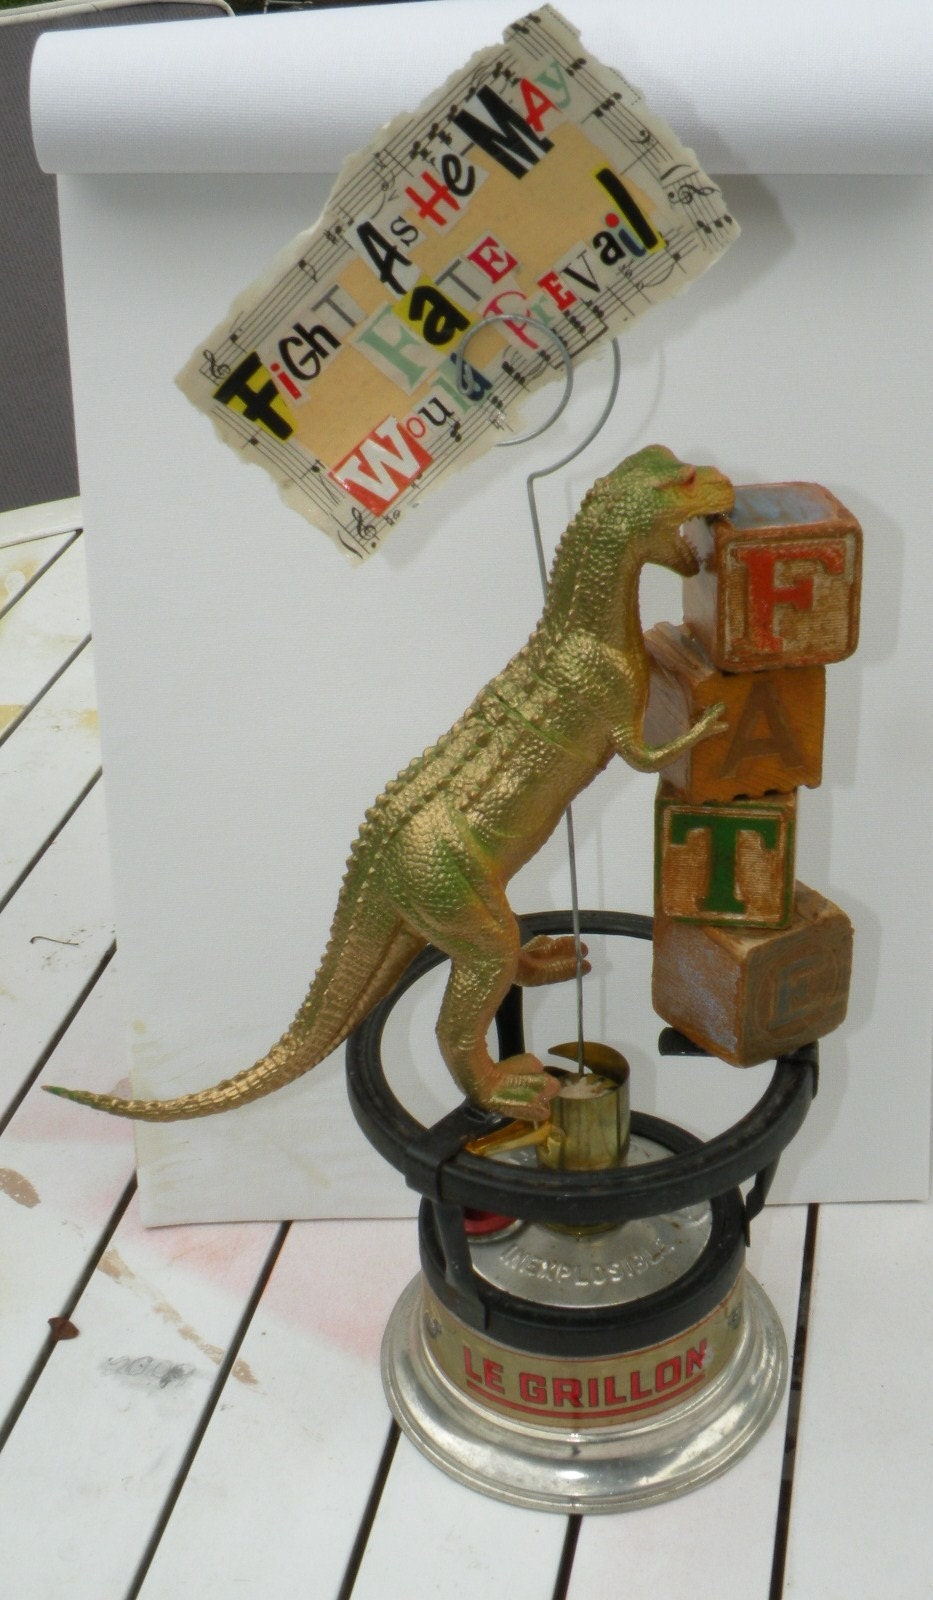 West Memphis 3 - Ira Mency FATE Assemblage Dinosaur Sculpture - All Proceeds to Benefit the West Memphis Three